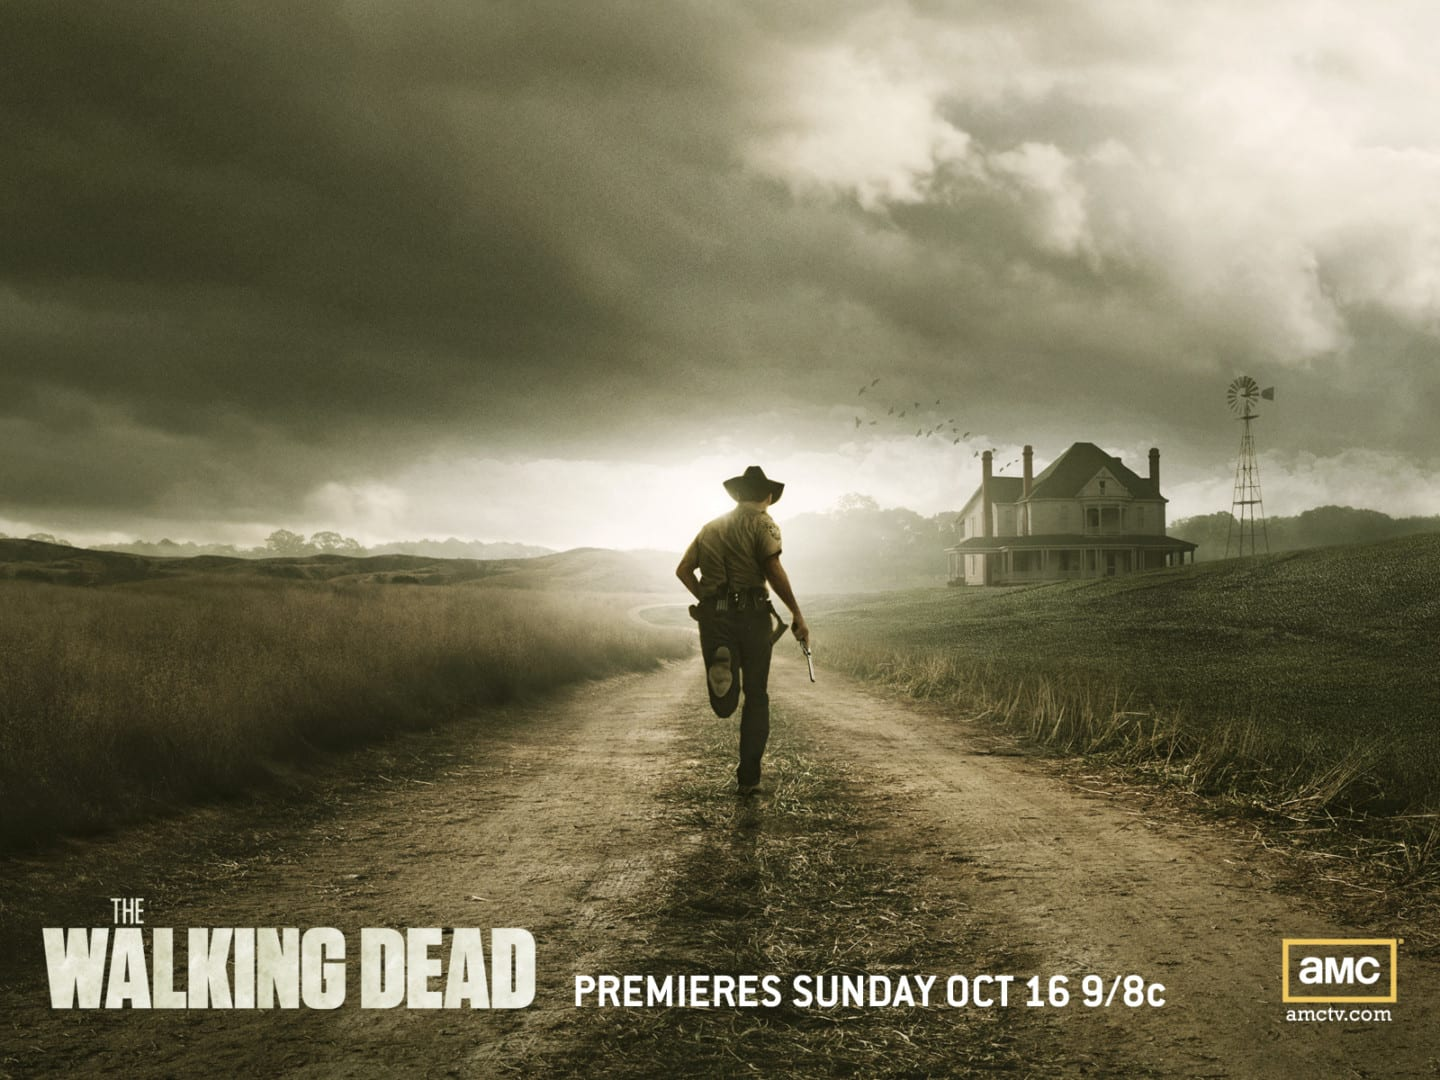 Walking Dead Turning Into First-Person Shooter